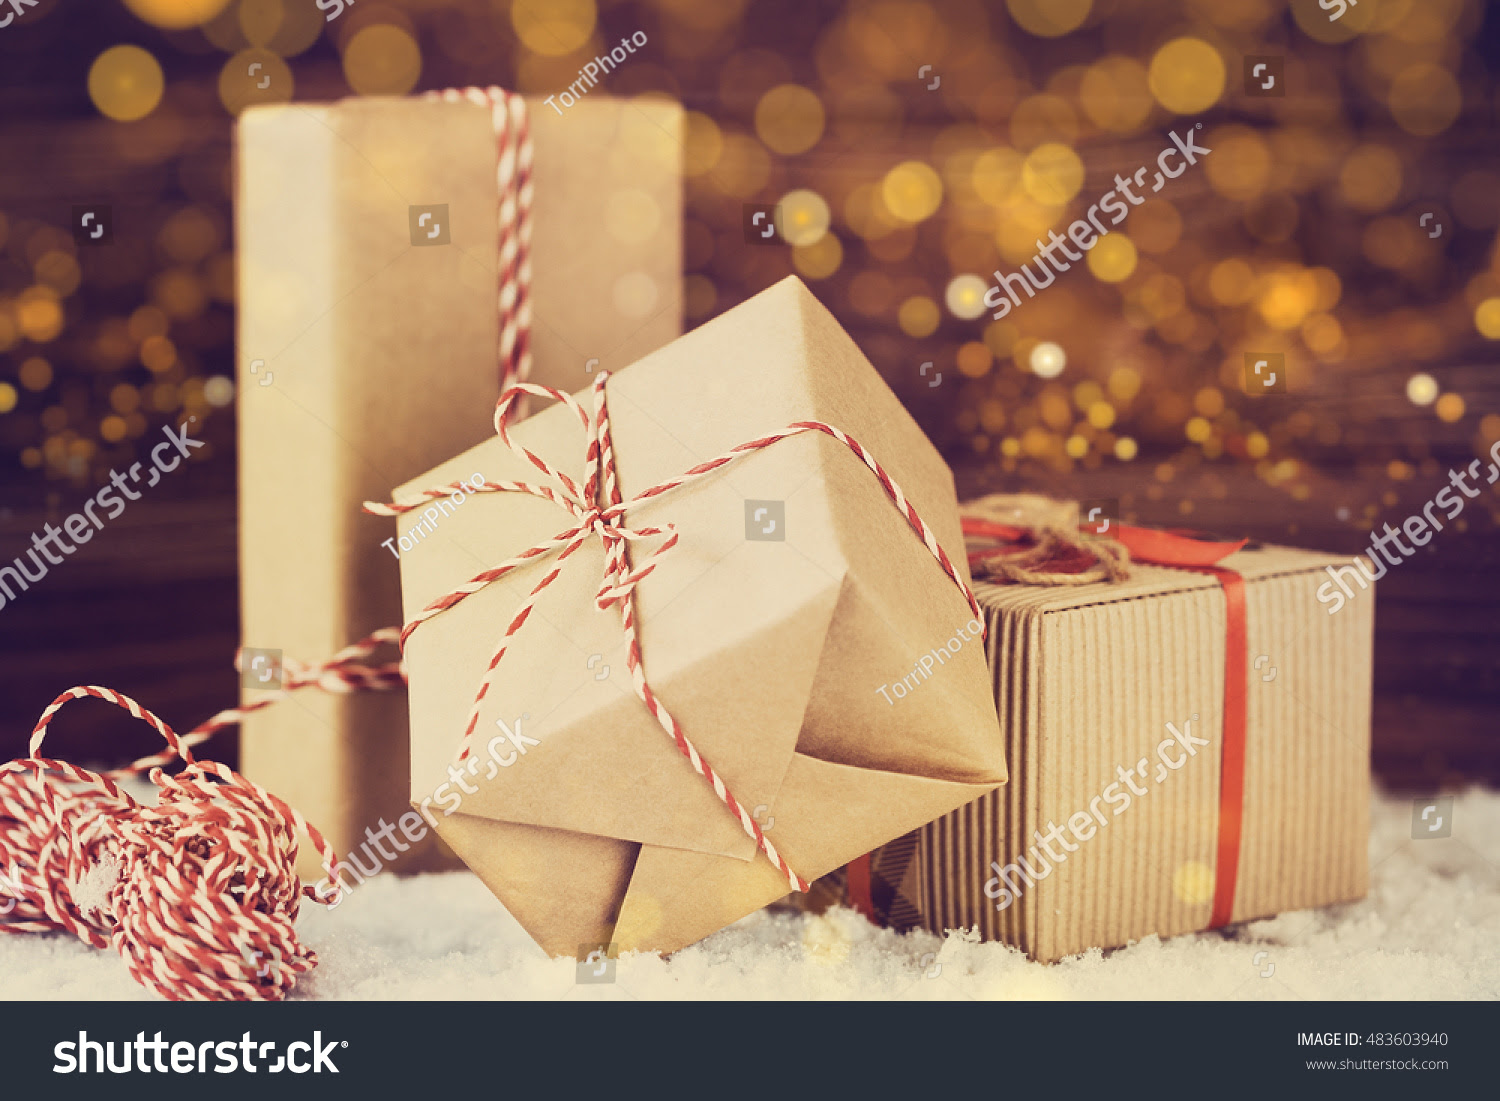 http://www.shutterstock.com/pic-483603940/stock-photo-christmas-gift-boxes-wrapped-in-brown-paper-with-red-ribbon-on-golden-bokeh-background-in-vintage-style-shallow-focus.html